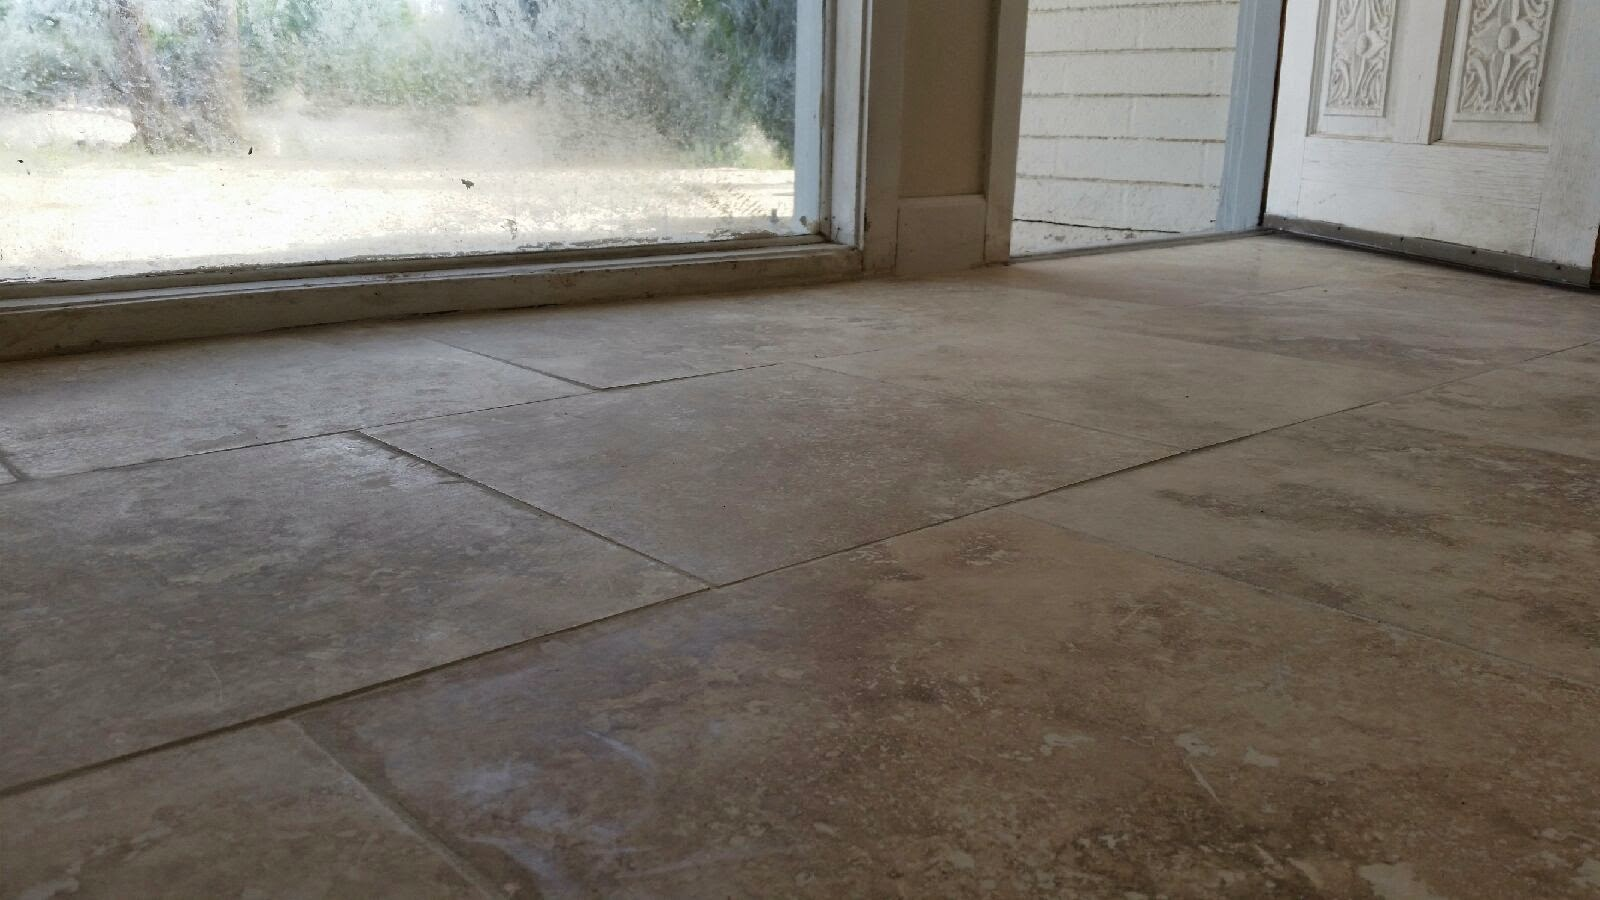 Pay top dollar for travertine tile flooring make sure you dont wed love to hear what you think dailygadgetfo Image collections